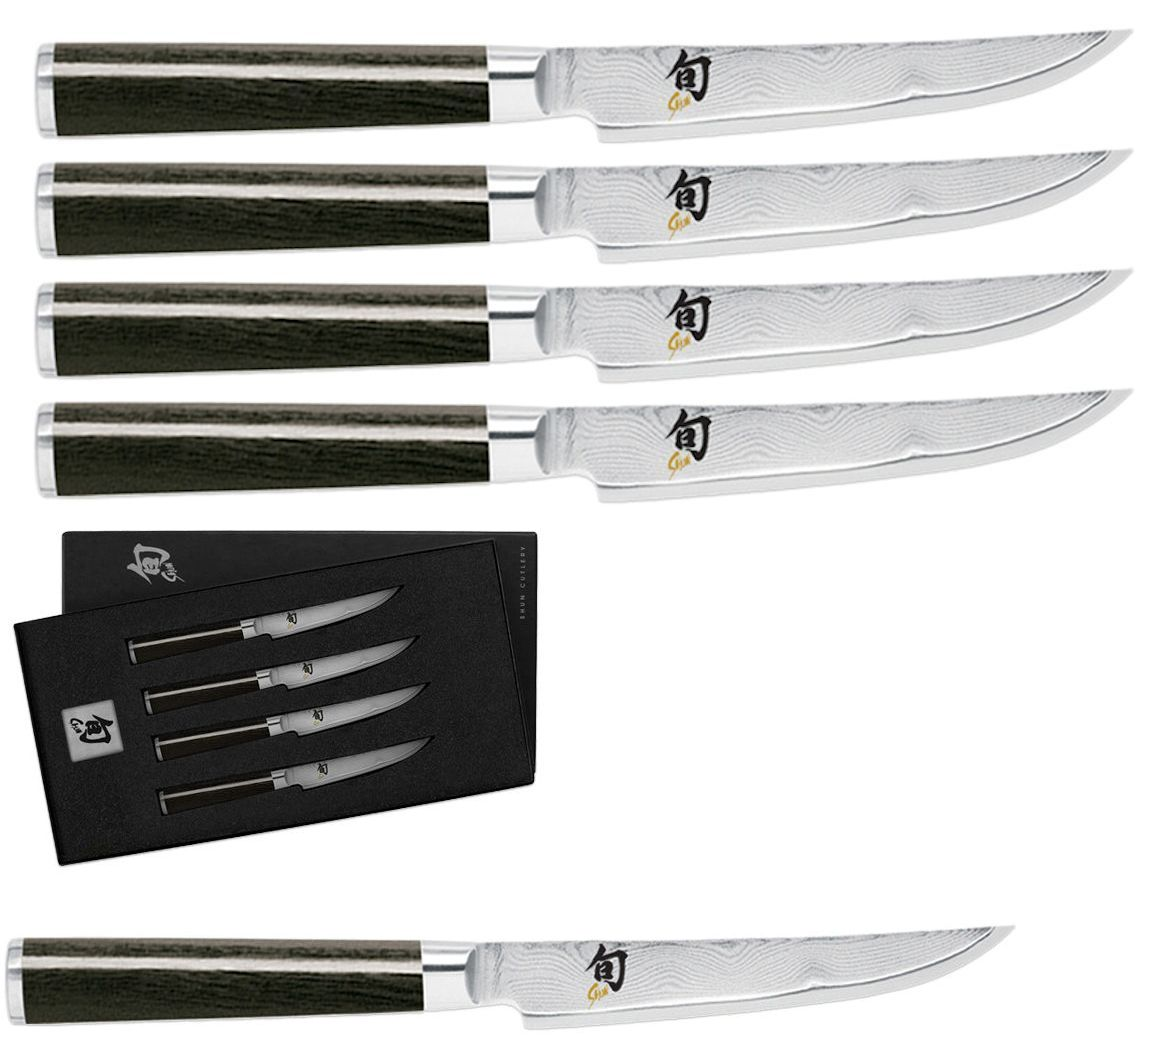 Kitchen and steak knives shun classic piece fineedged